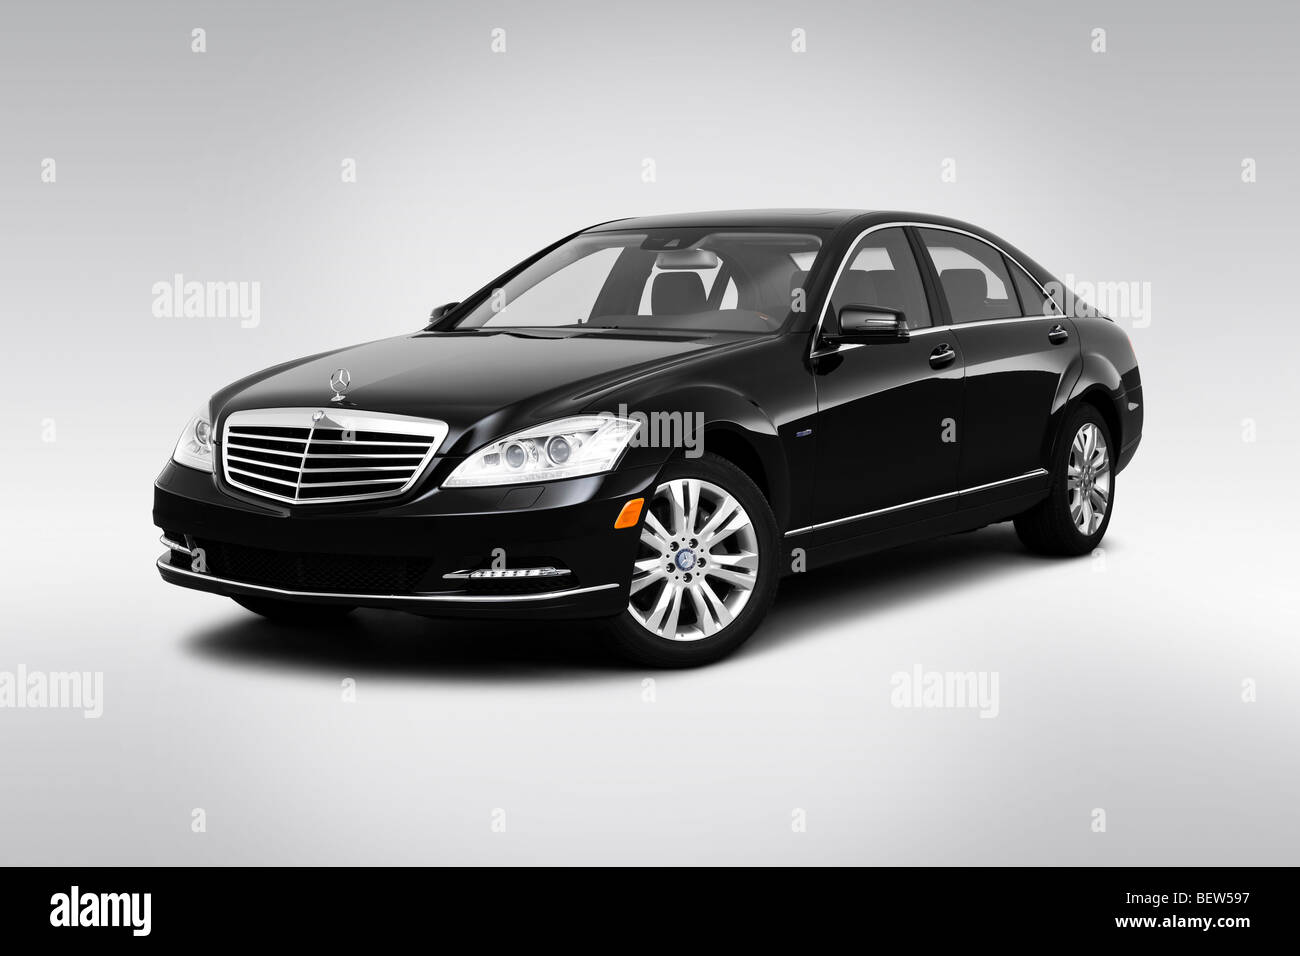 2010 mercedes benz s class hybrid s400 in black front angle view stock photo 26368531 alamy. Black Bedroom Furniture Sets. Home Design Ideas